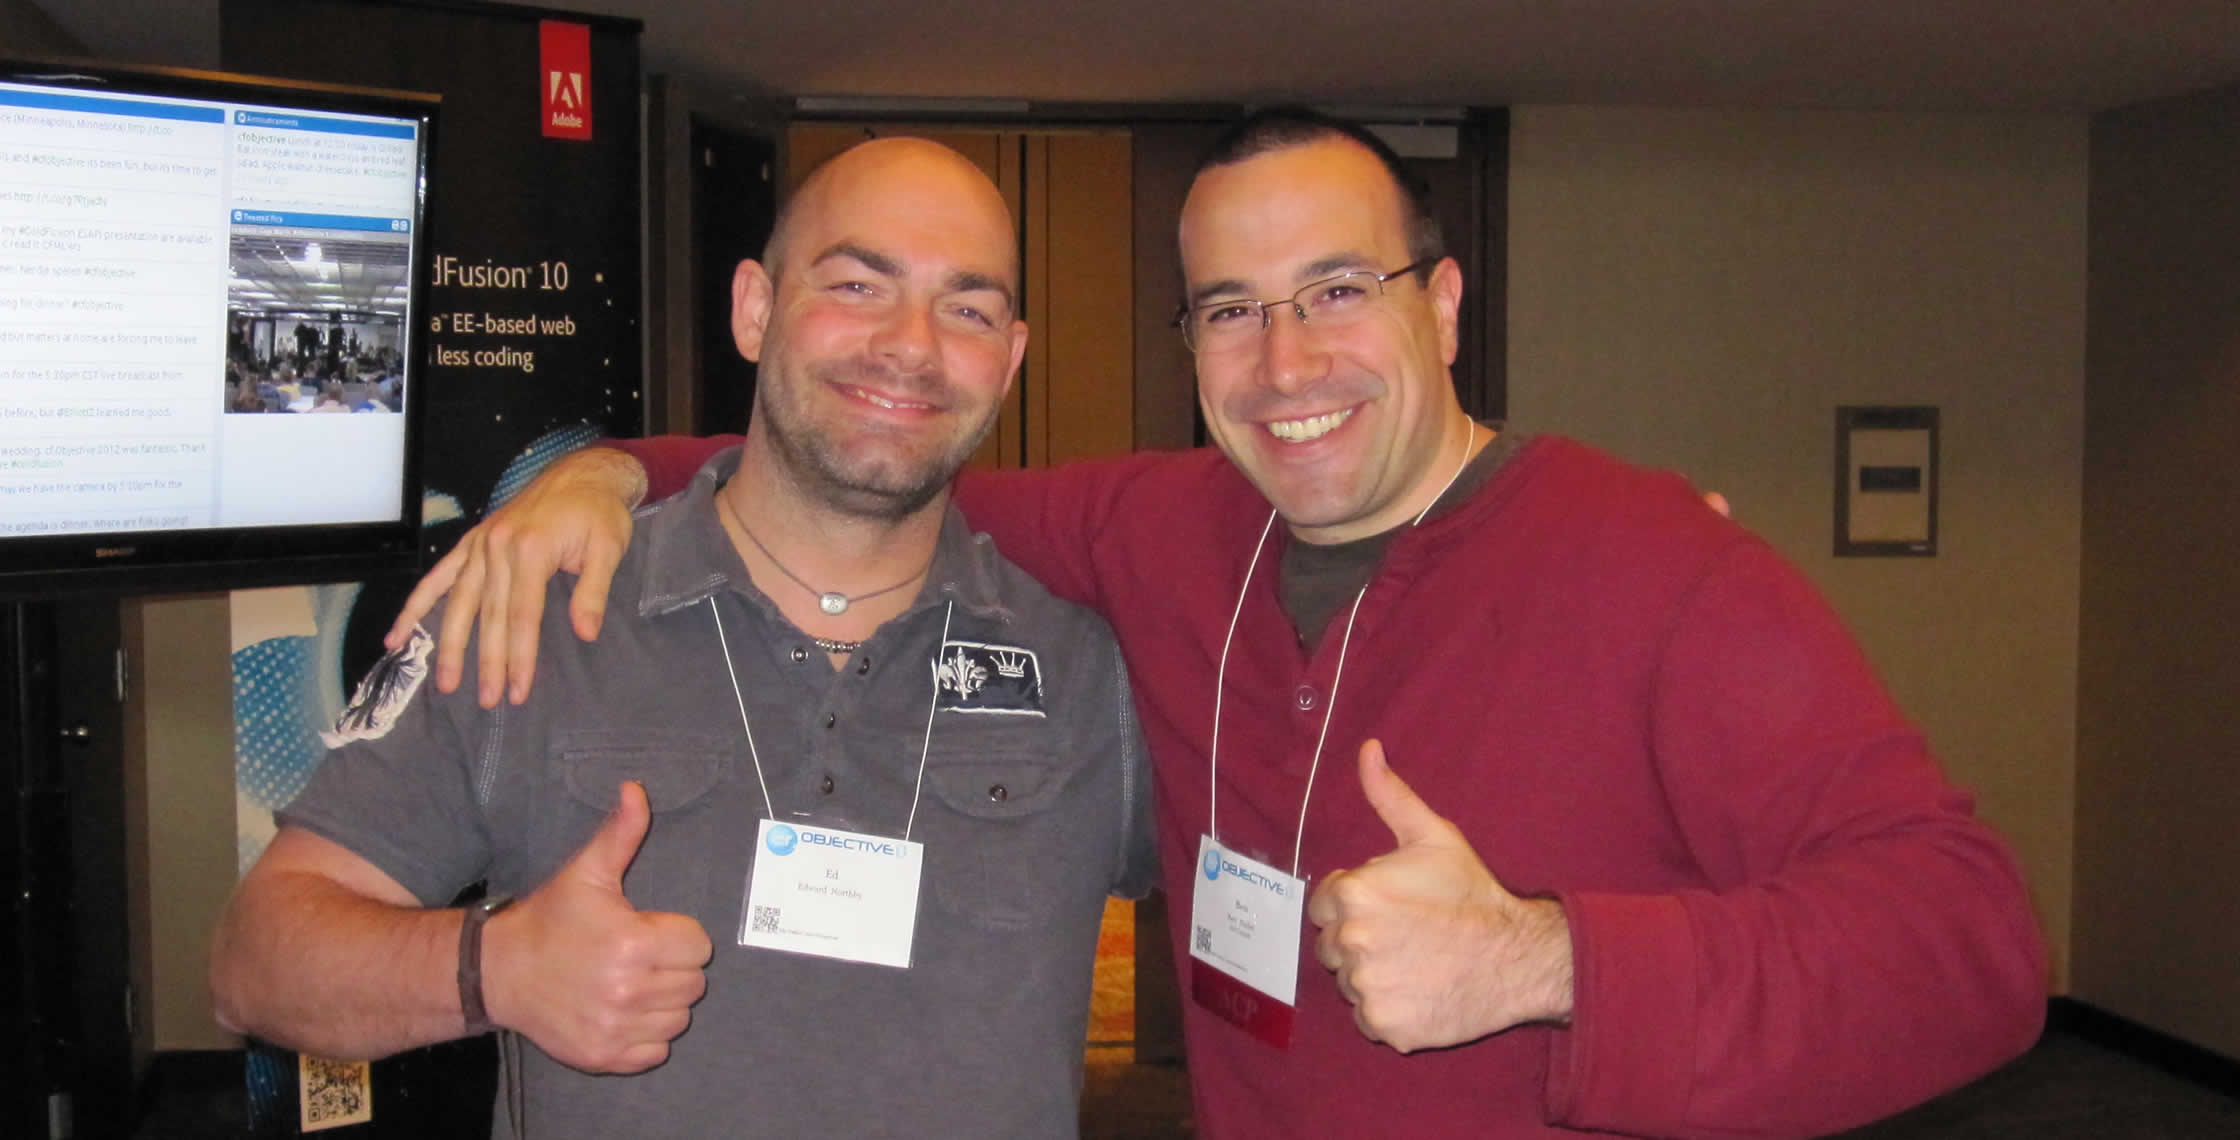 Ben Nadel at cf.Objective() 2012 (Minneapolis, MN) with: Ed Northby